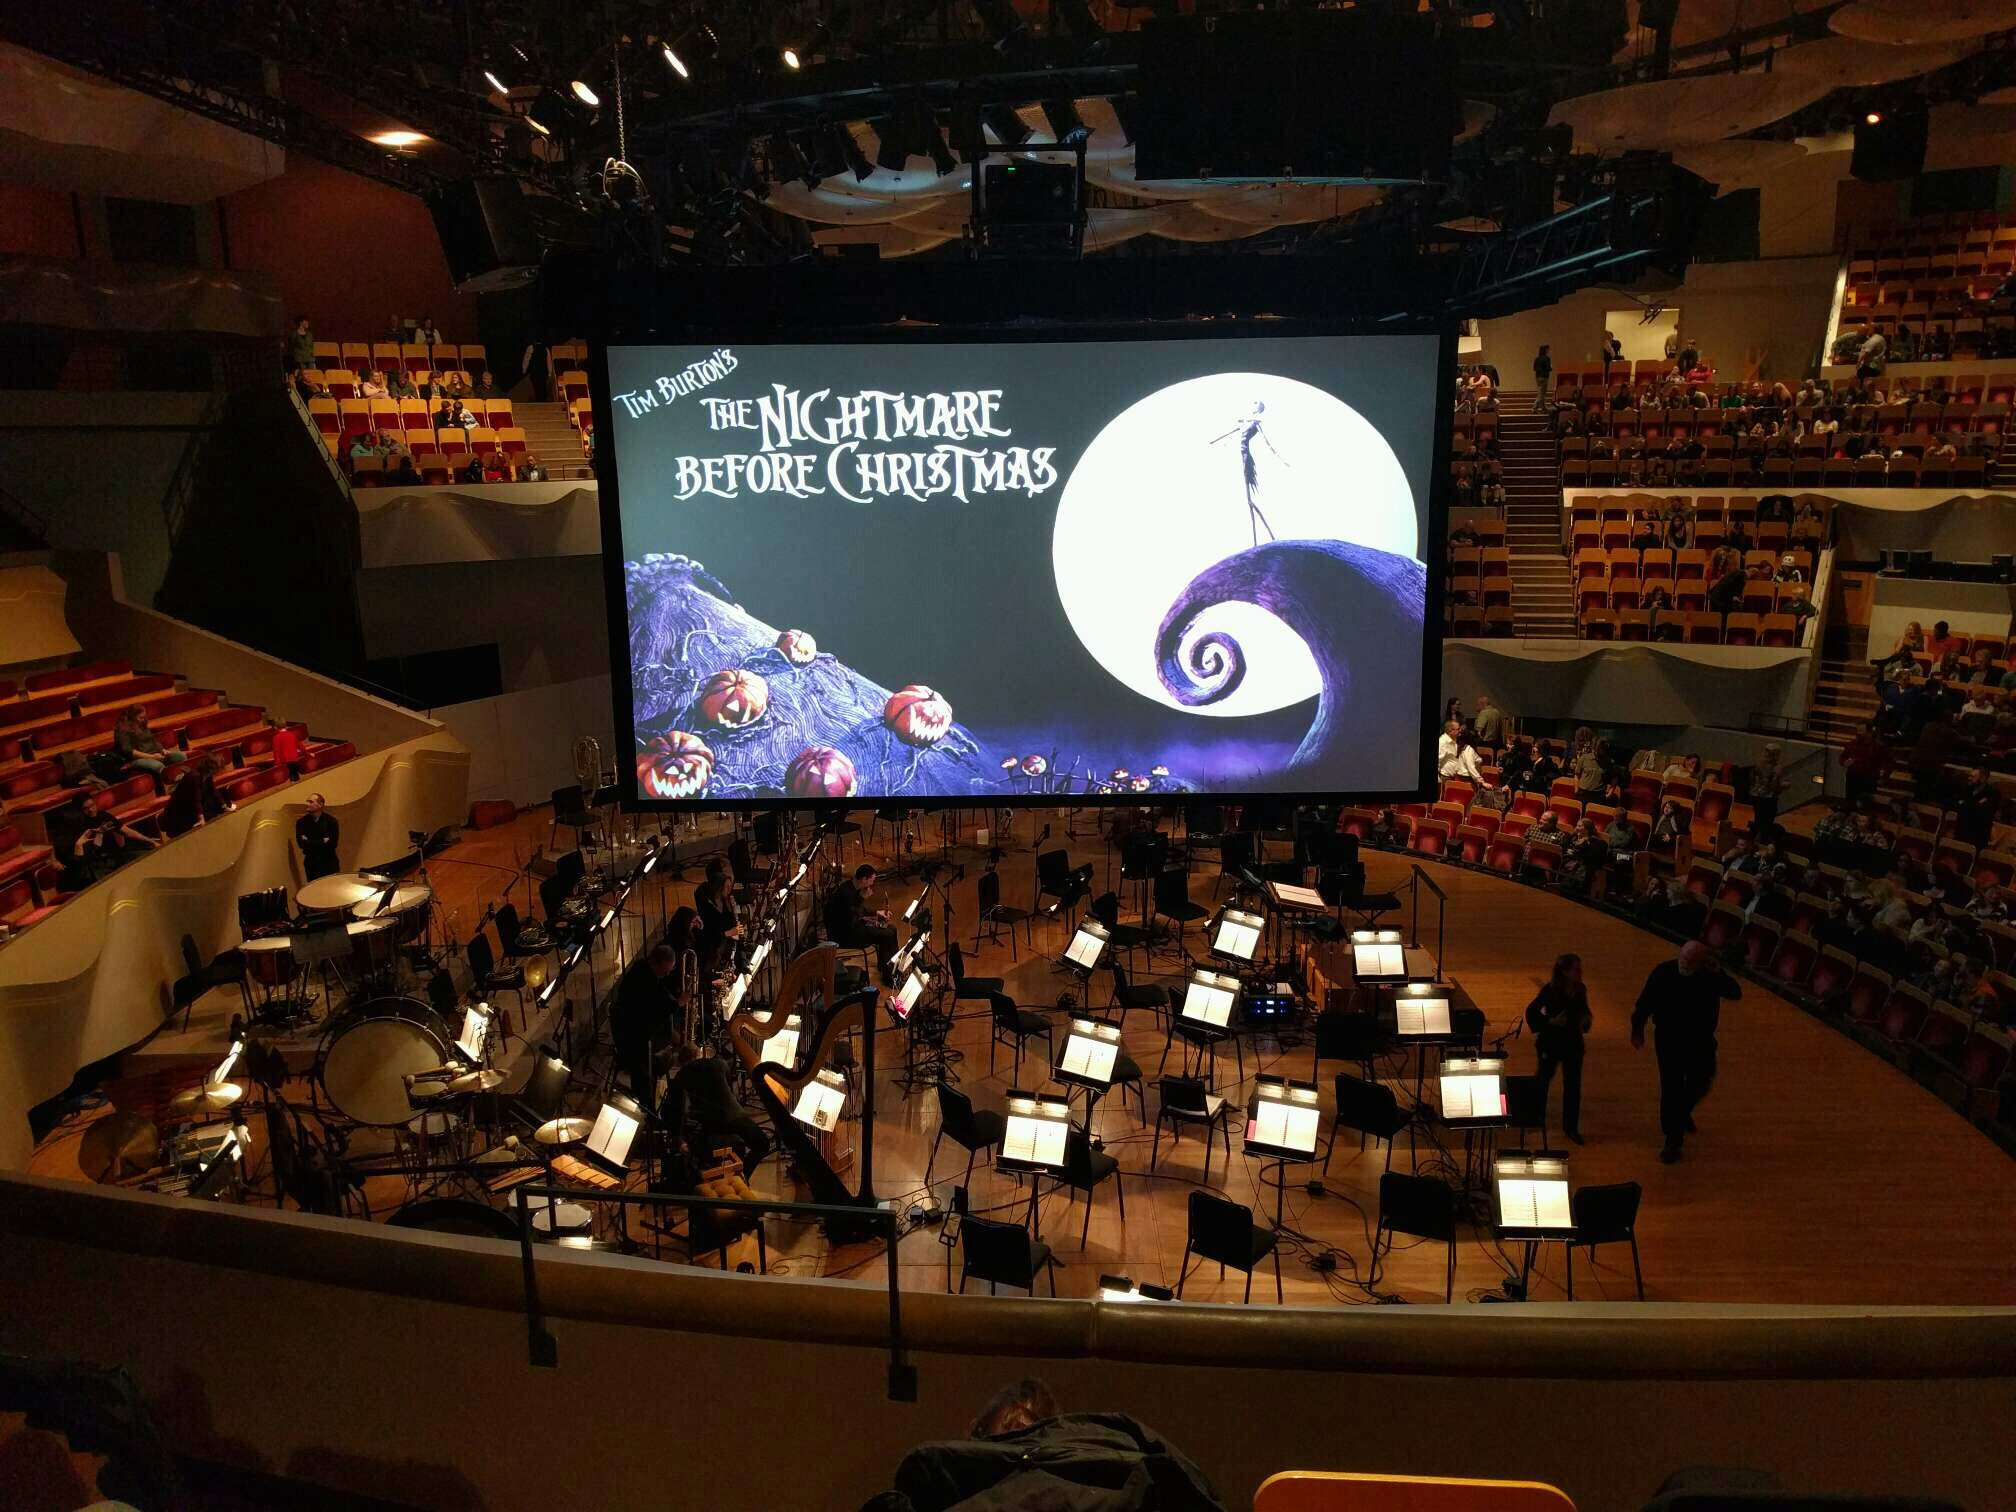 Boettcher Concert Hall Section Dress Circle 2 Row i Seat 11